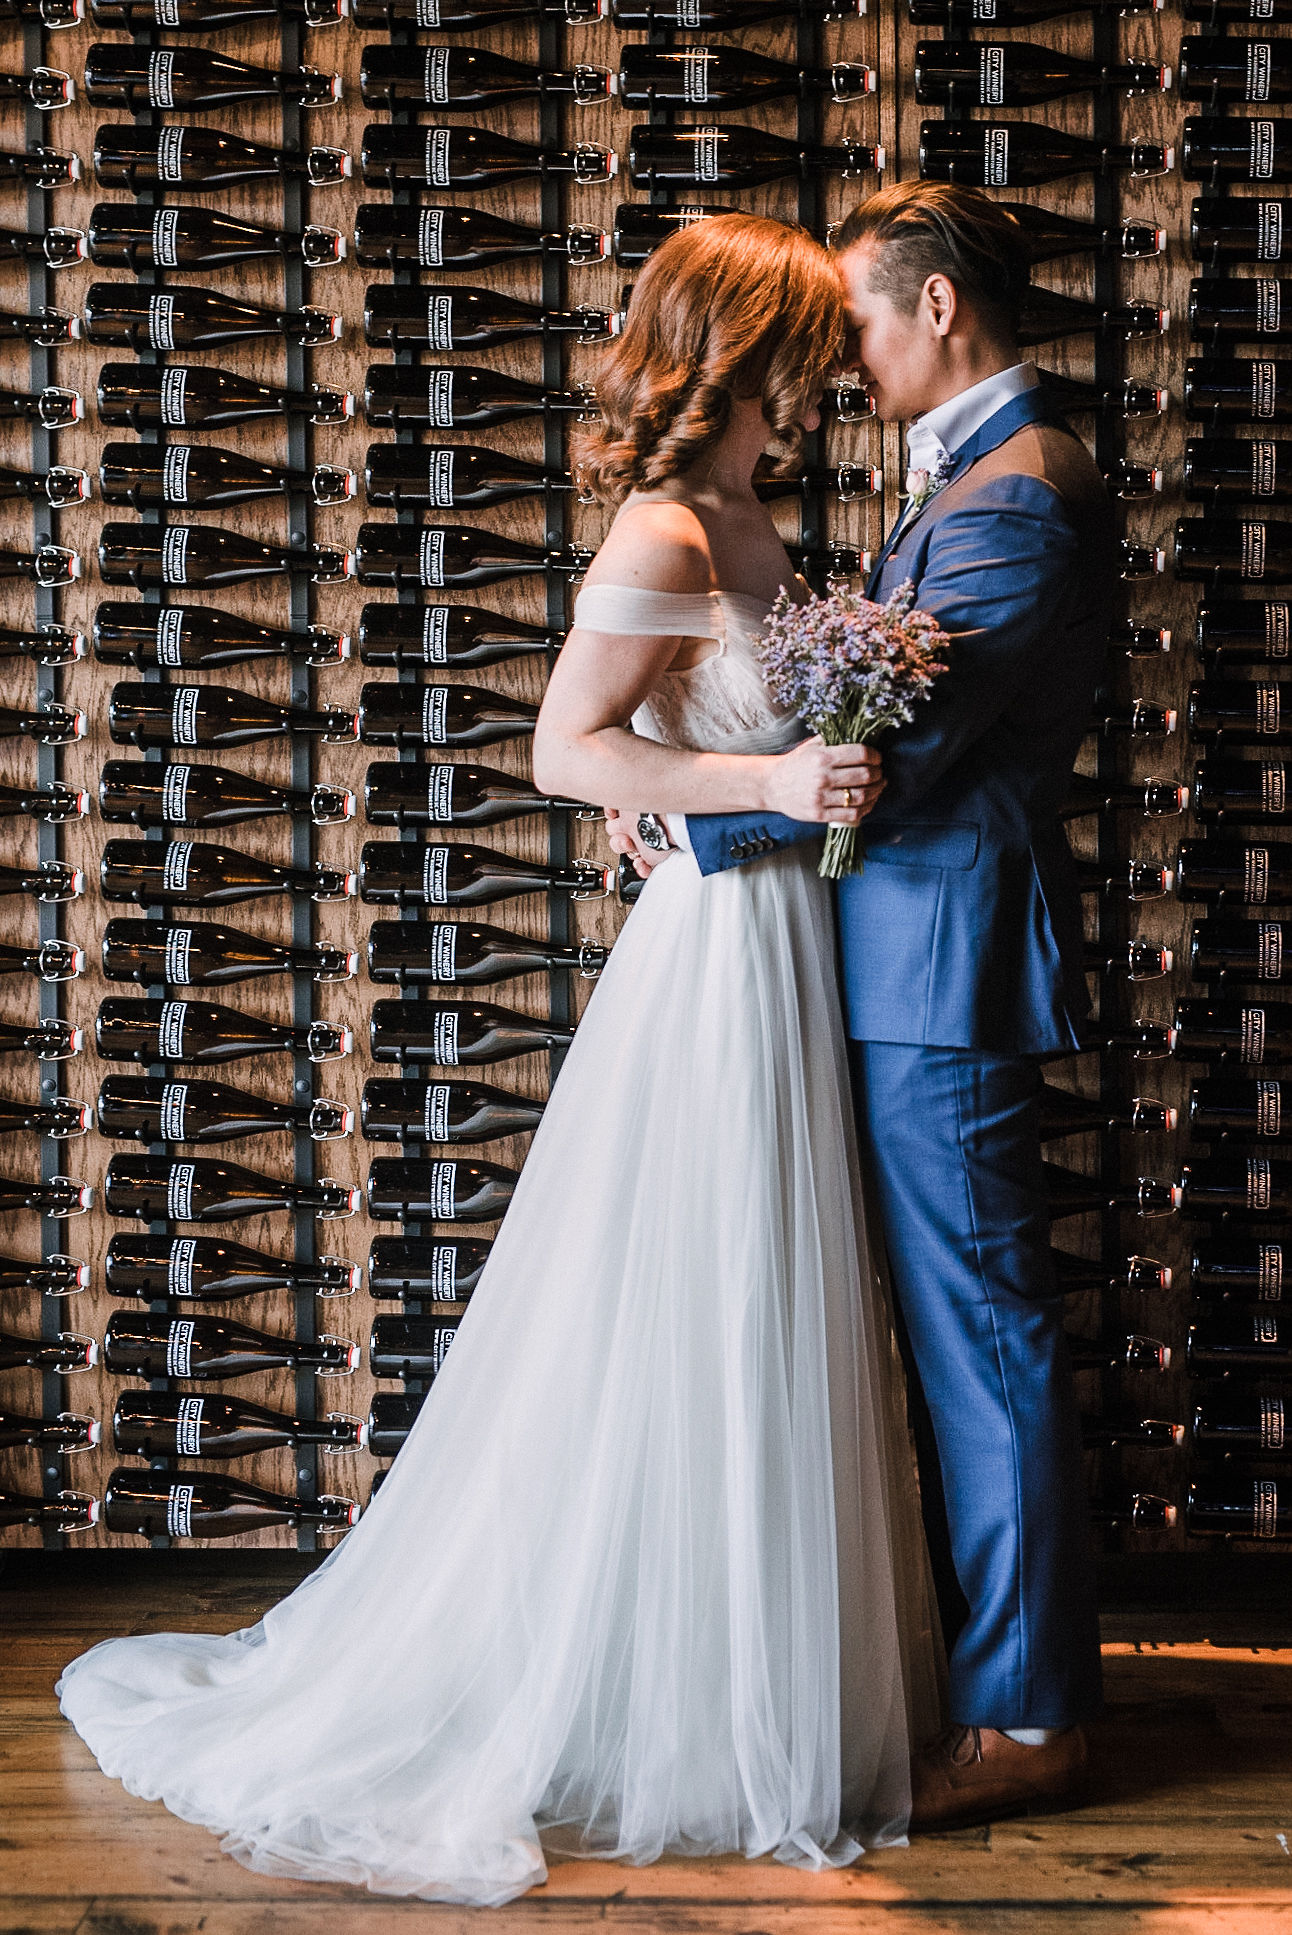 bride and groom embracing at City Winery in Washington DC